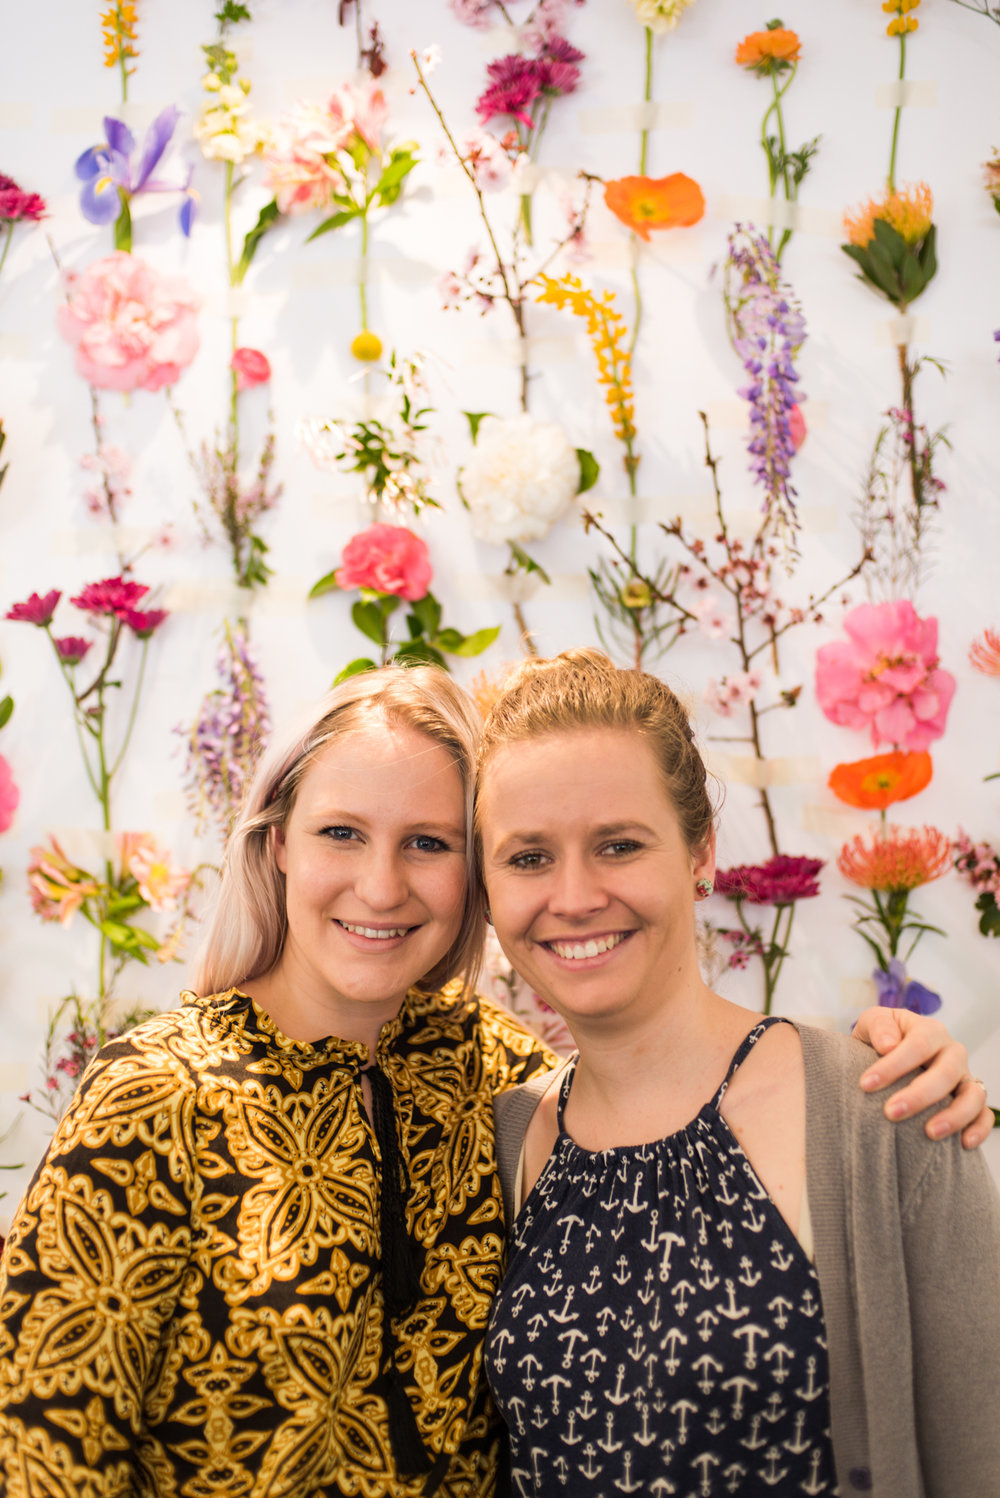 #PrettyPopUp event Cape Town by Brand Photographer Roxy Hutton CGScreative (263 of 255).JPG